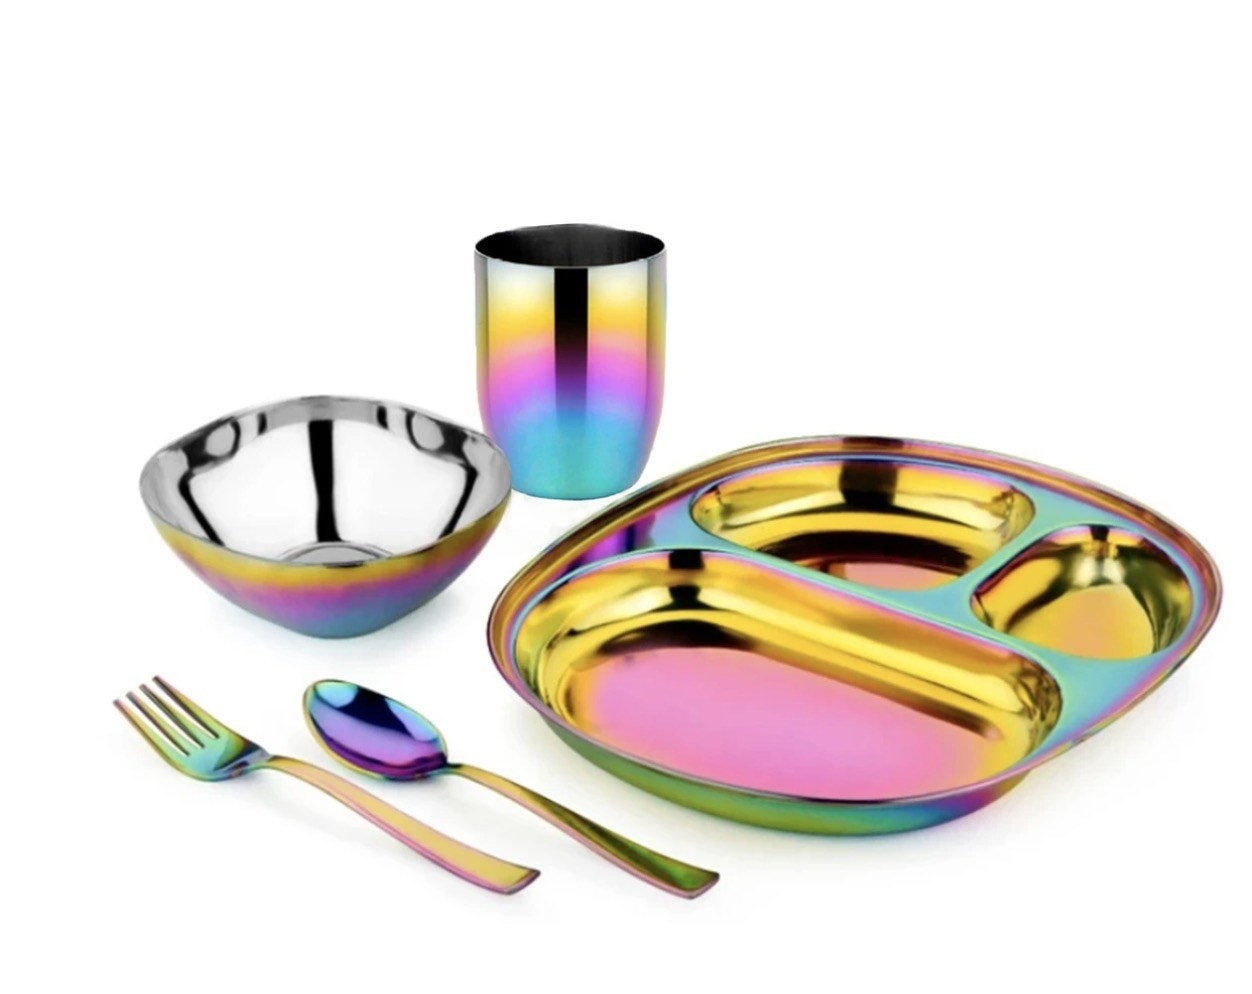 an iridescent bowl, cutlery, cup, and dish